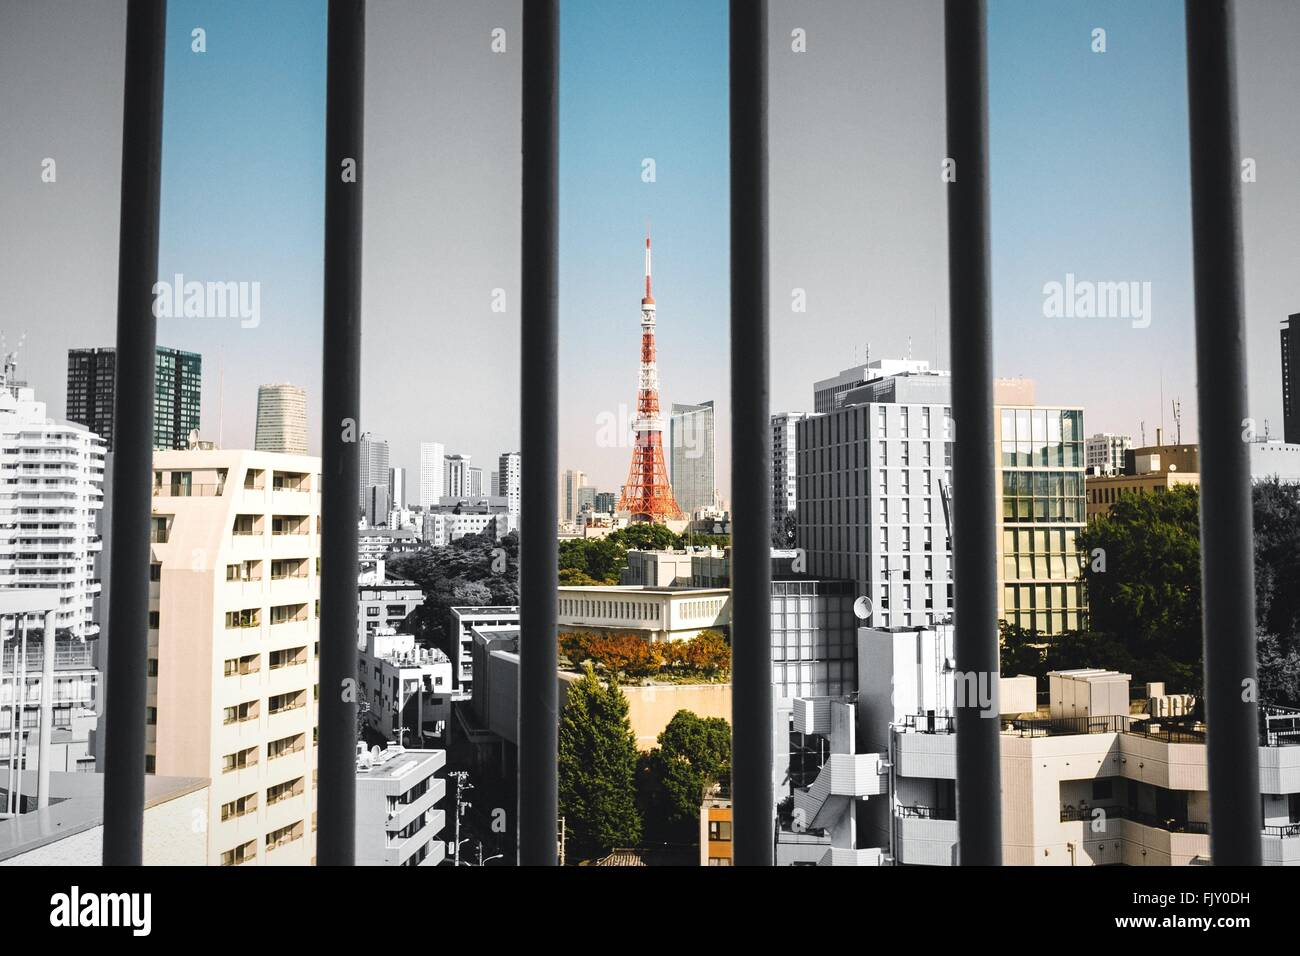 Tokyo Tower And Cityscape Seen Through Window - Stock Image